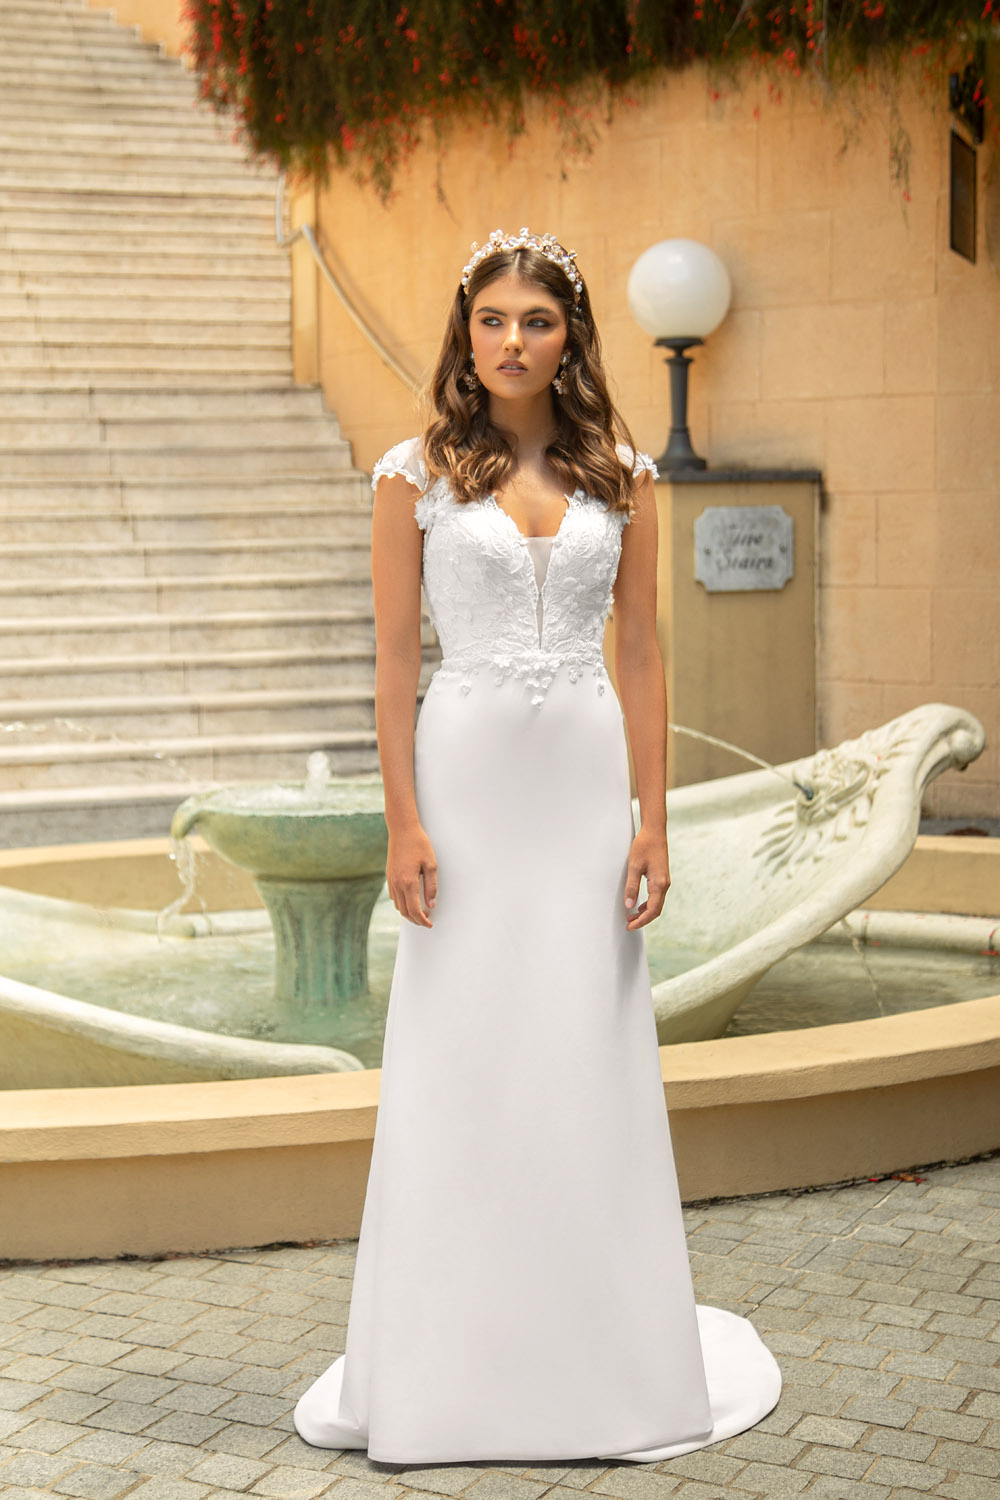 BLOSSOM-ROSE ML19603 DEEP PLUNGE BODICE WITH ILLUSION TULLE CAP SLEEVES AND ILLUSION BACK WITH BUTTONS FITTED CREPE SKIRT WEDDING DRESS MADI LANE BRIDAL